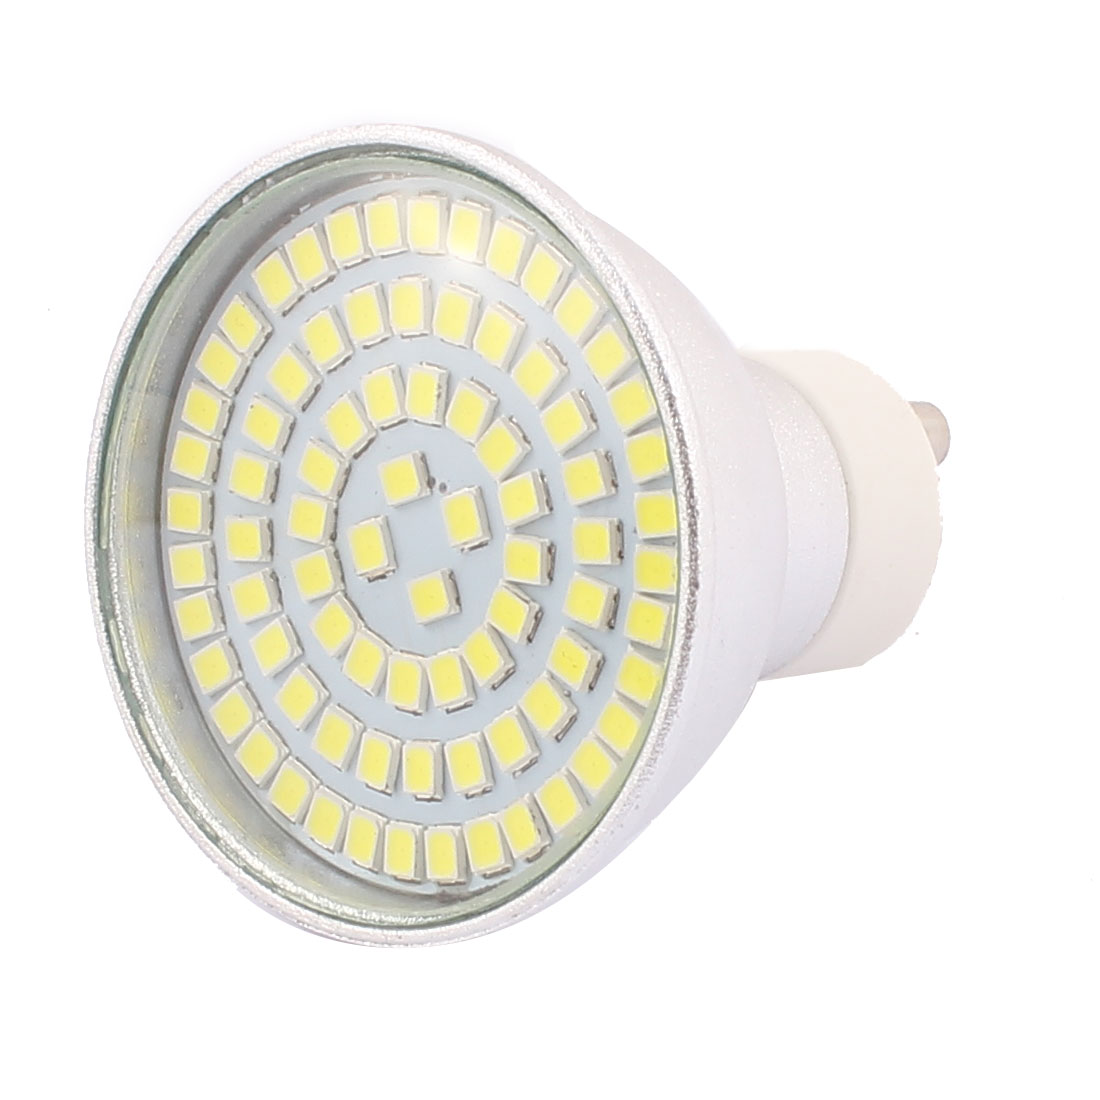 GU10 SMD 2835 80 LEDs Aluminum Energy Saving LED Lamp Bulb White AC 110V 8W